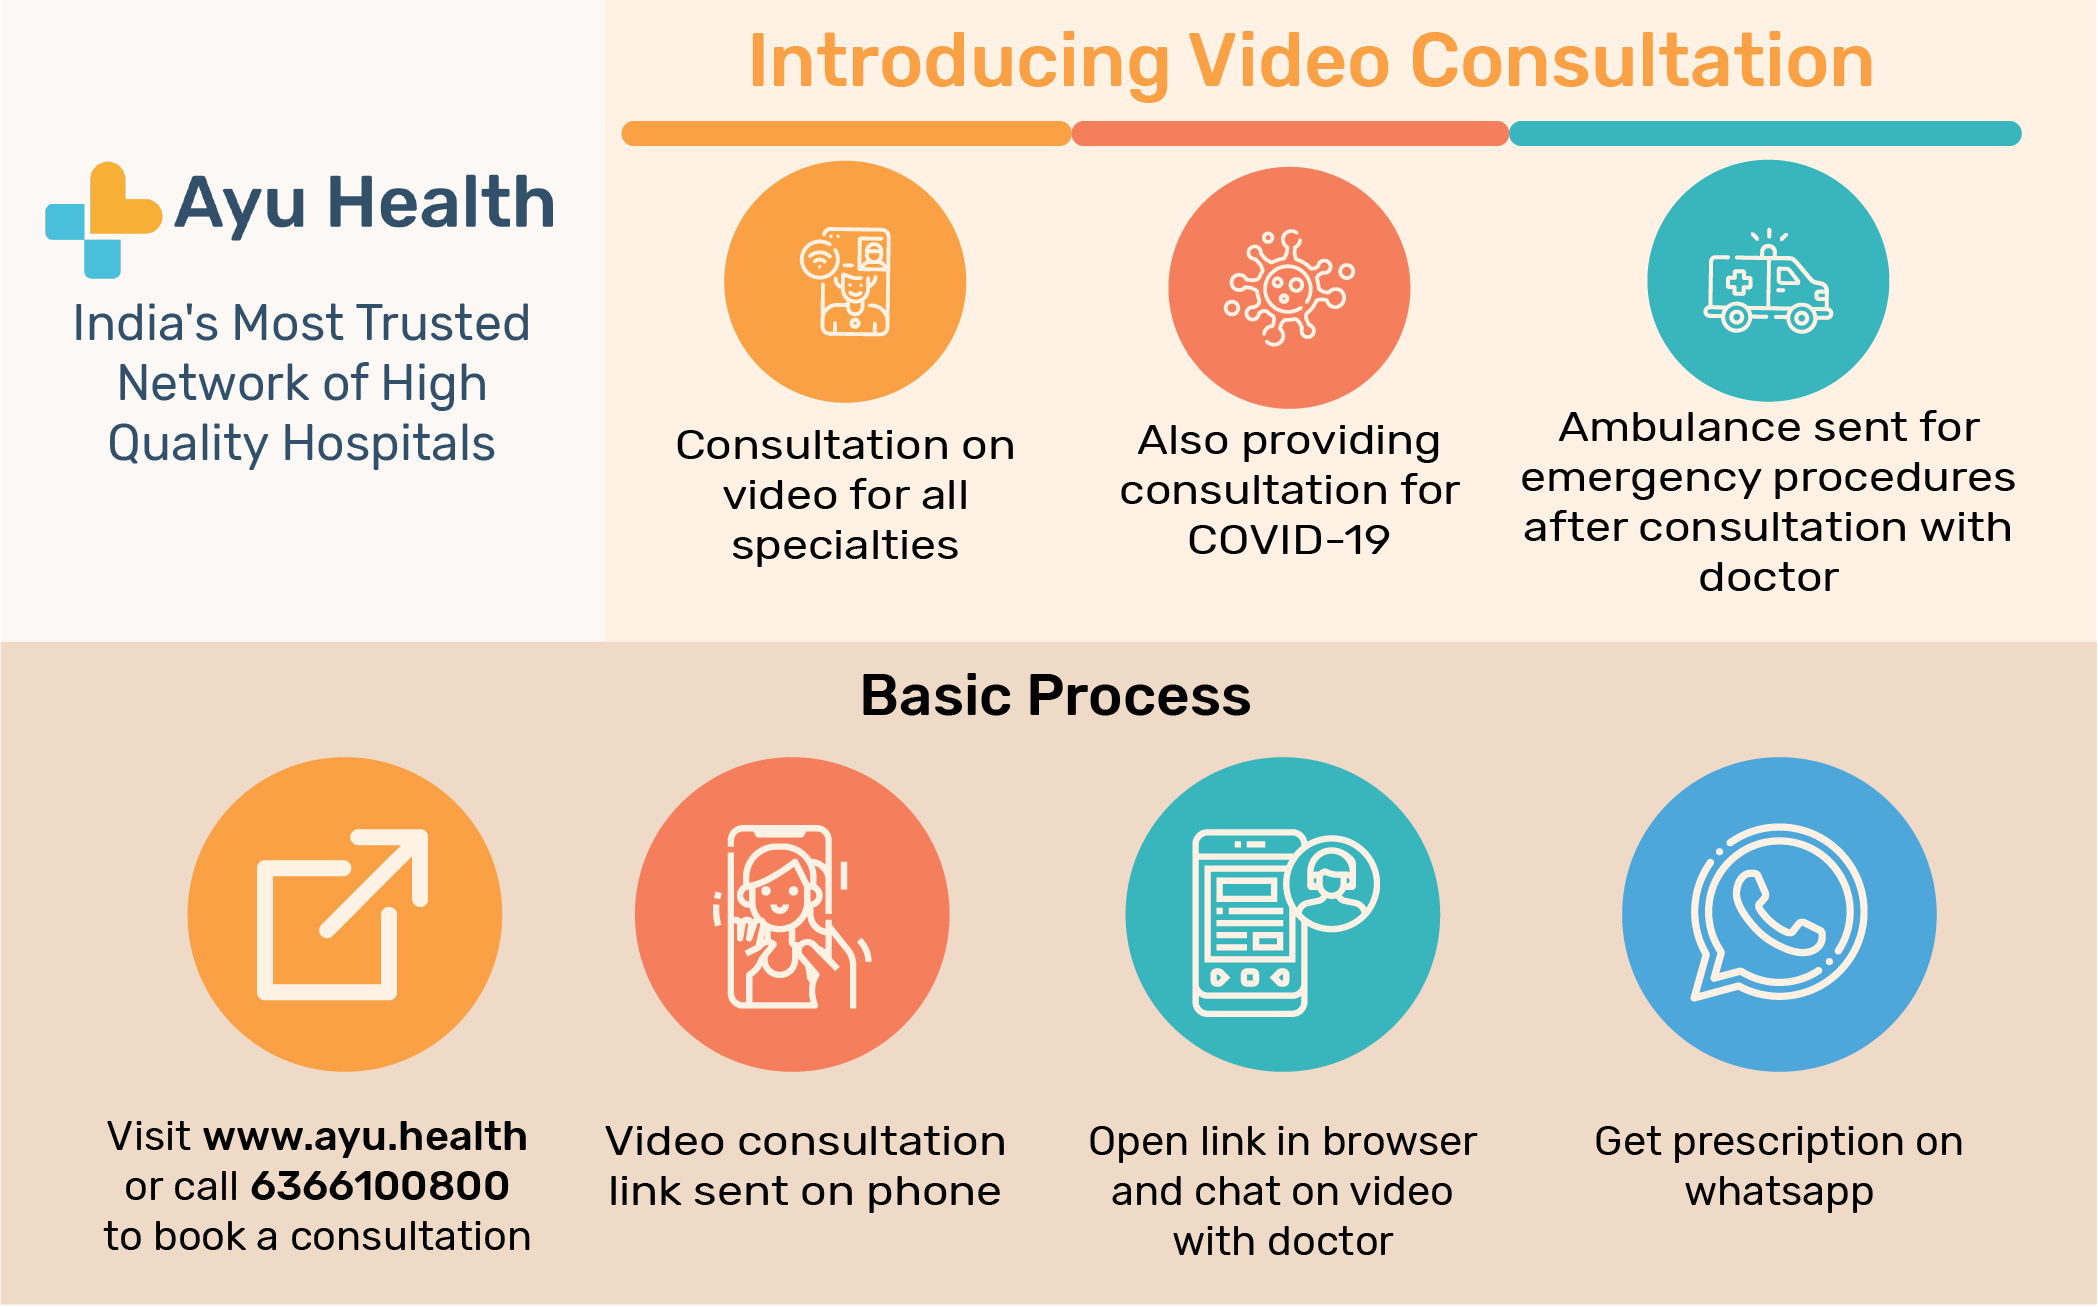 Ayu Health offers online medical consultations